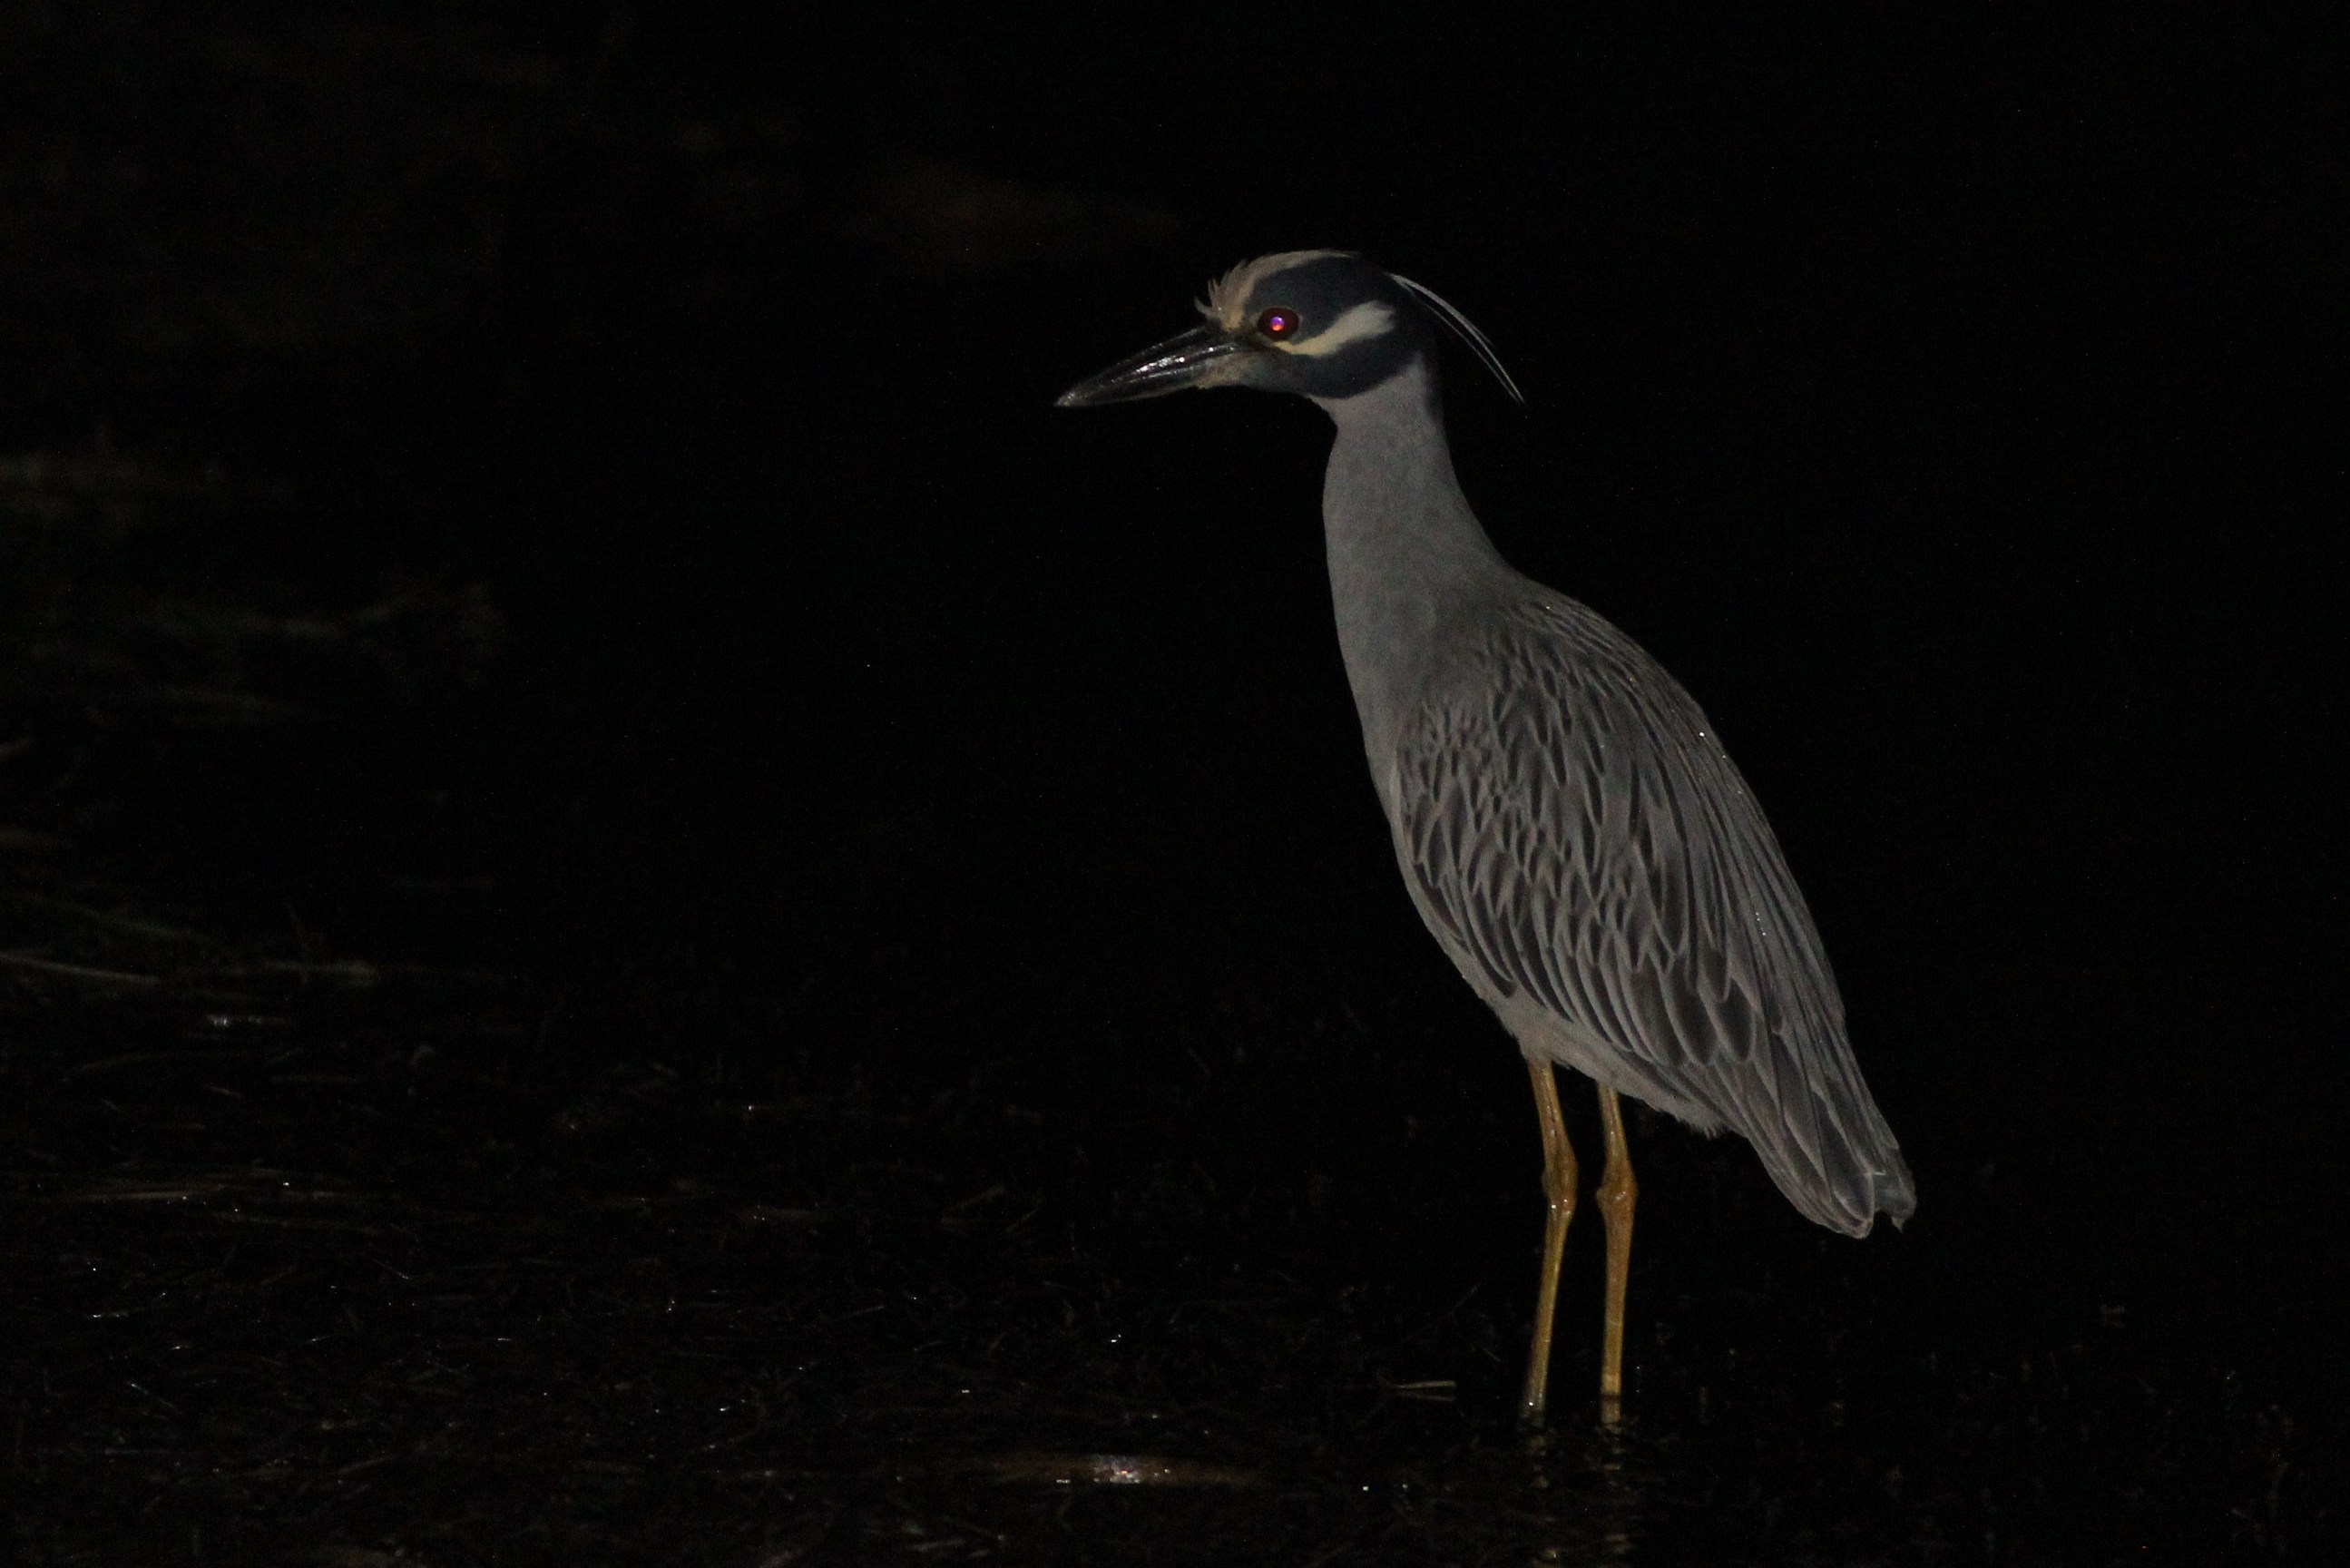 Yellow-crowned Night-Heron on Big Pine Key, Florida. (Photo by Alex Lamoreaux)